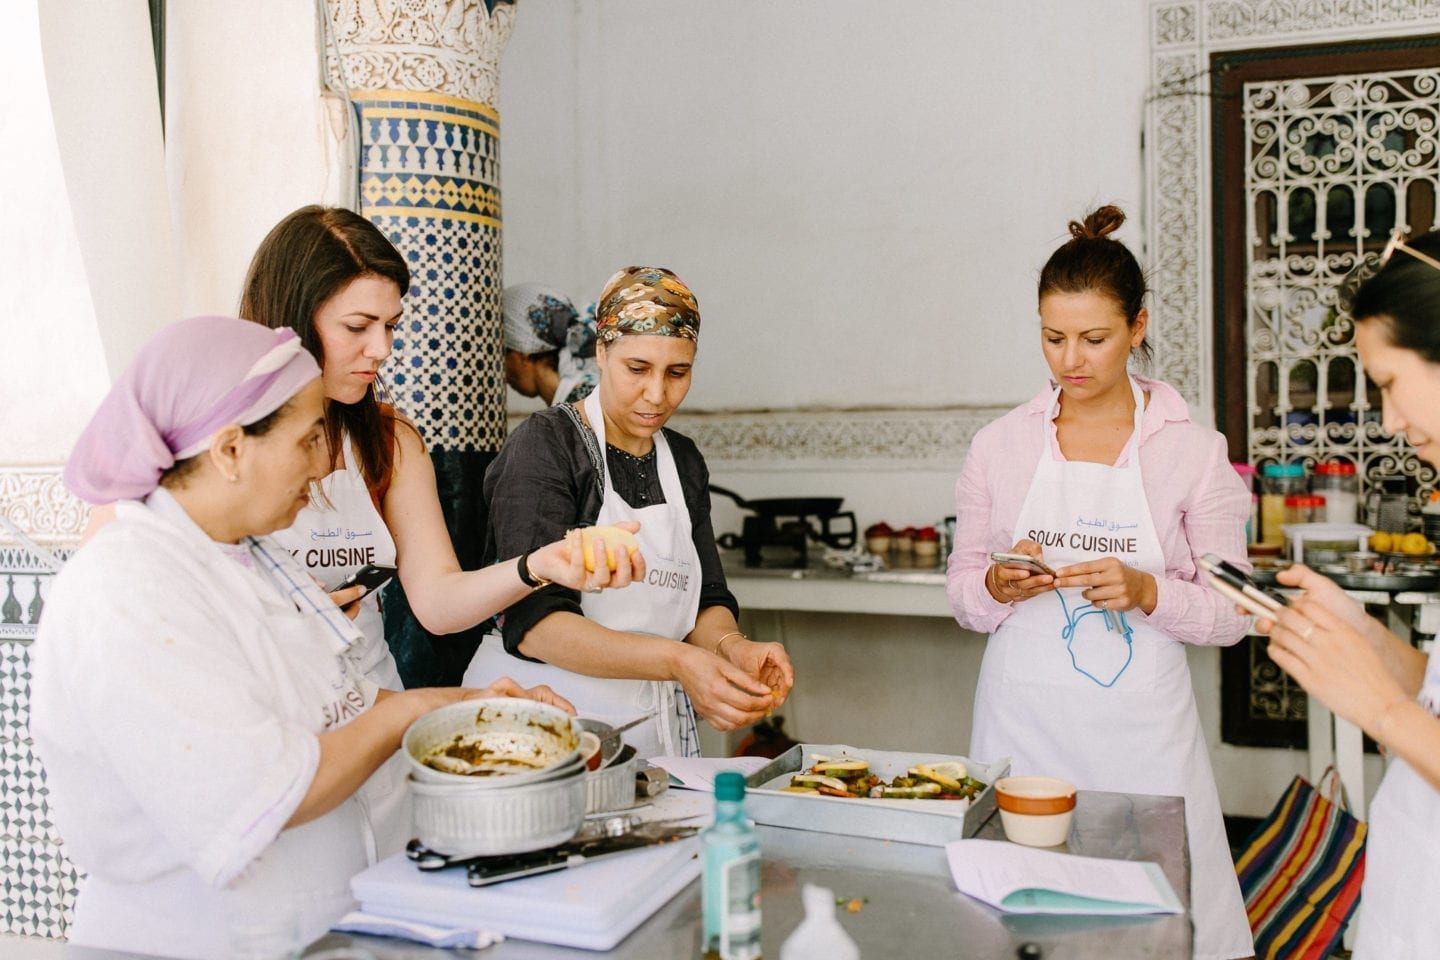 Souk cuisine cooking class Marrakech workation citytrip